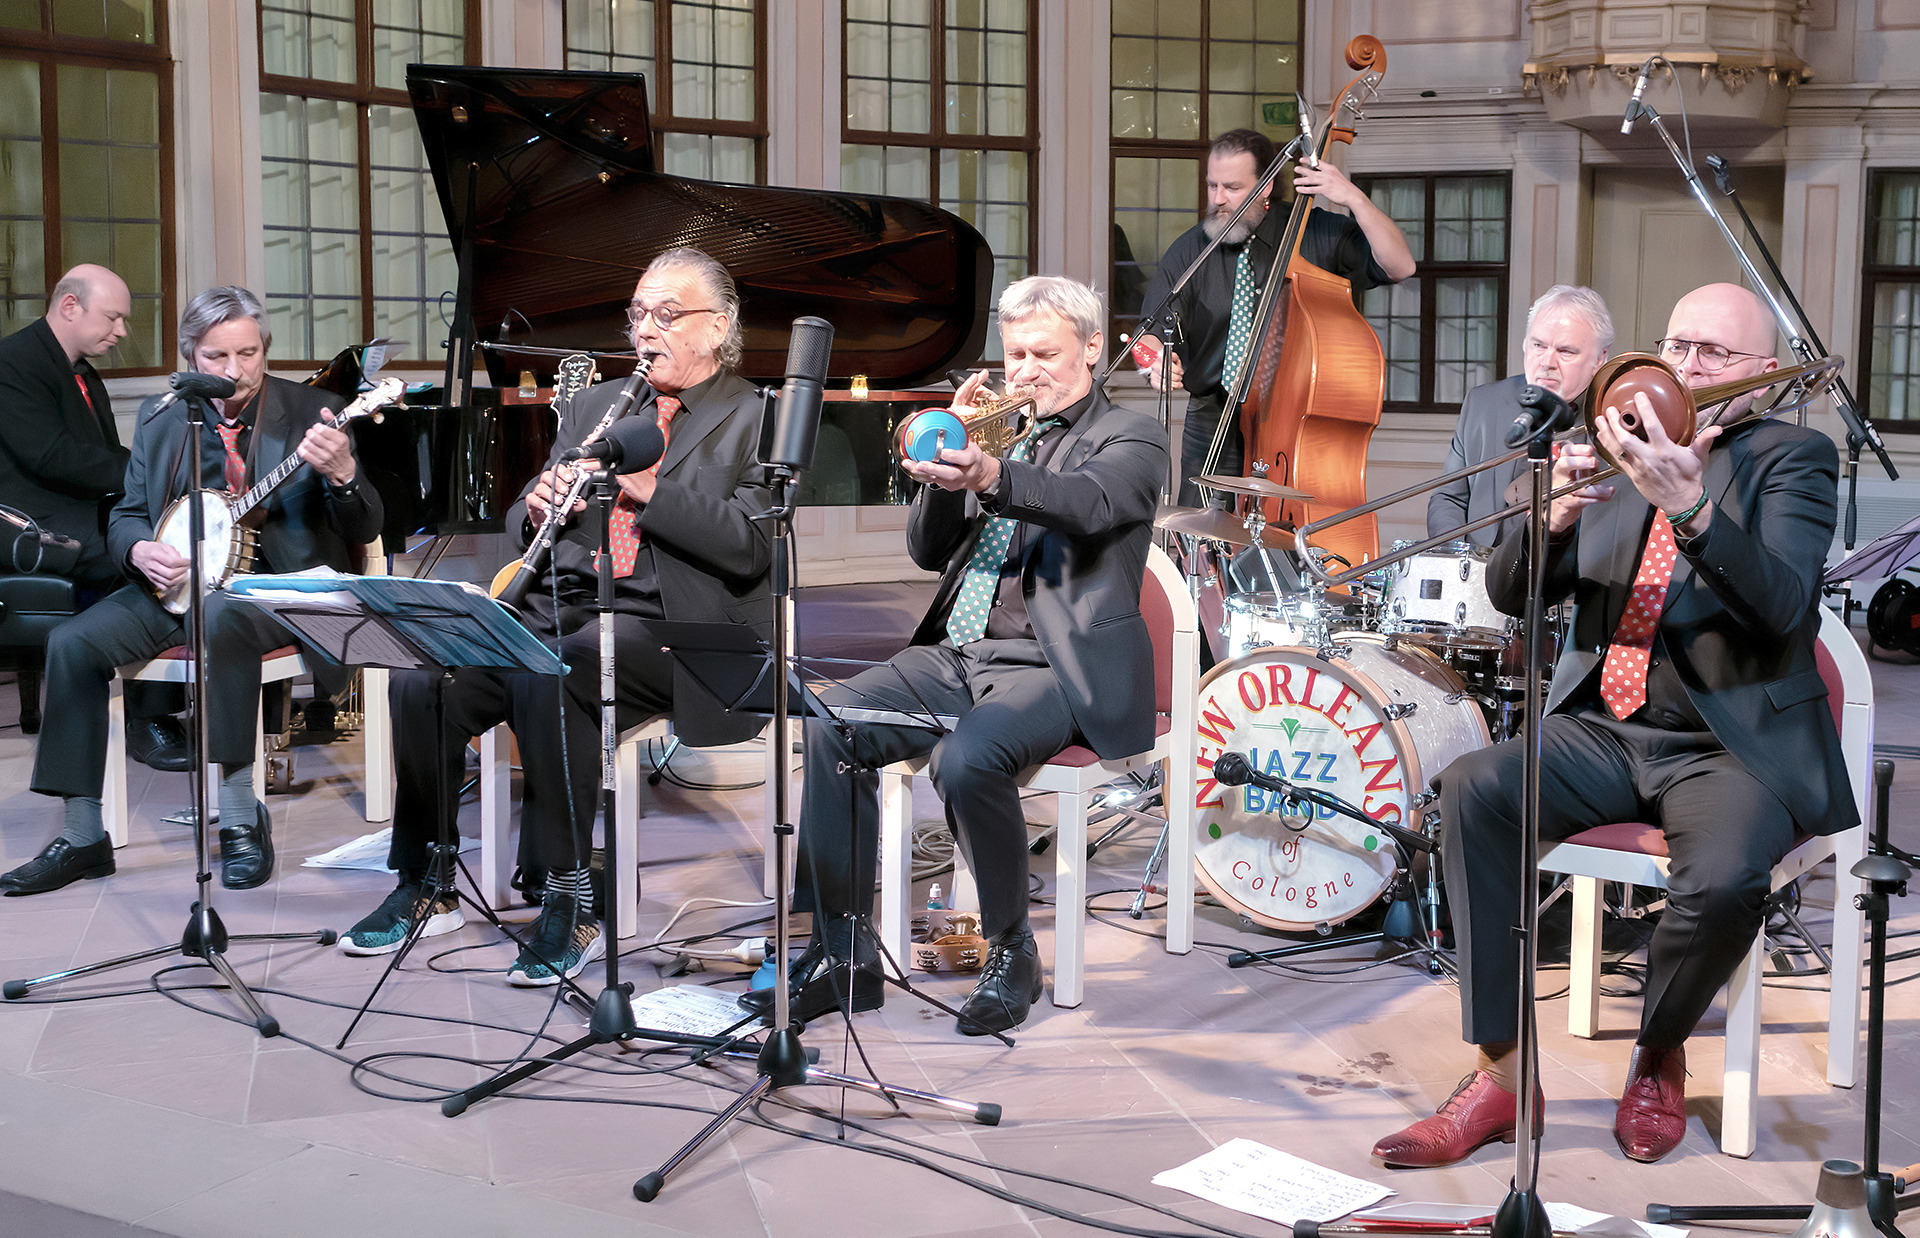 New Orleans Jazz Band of Cologne